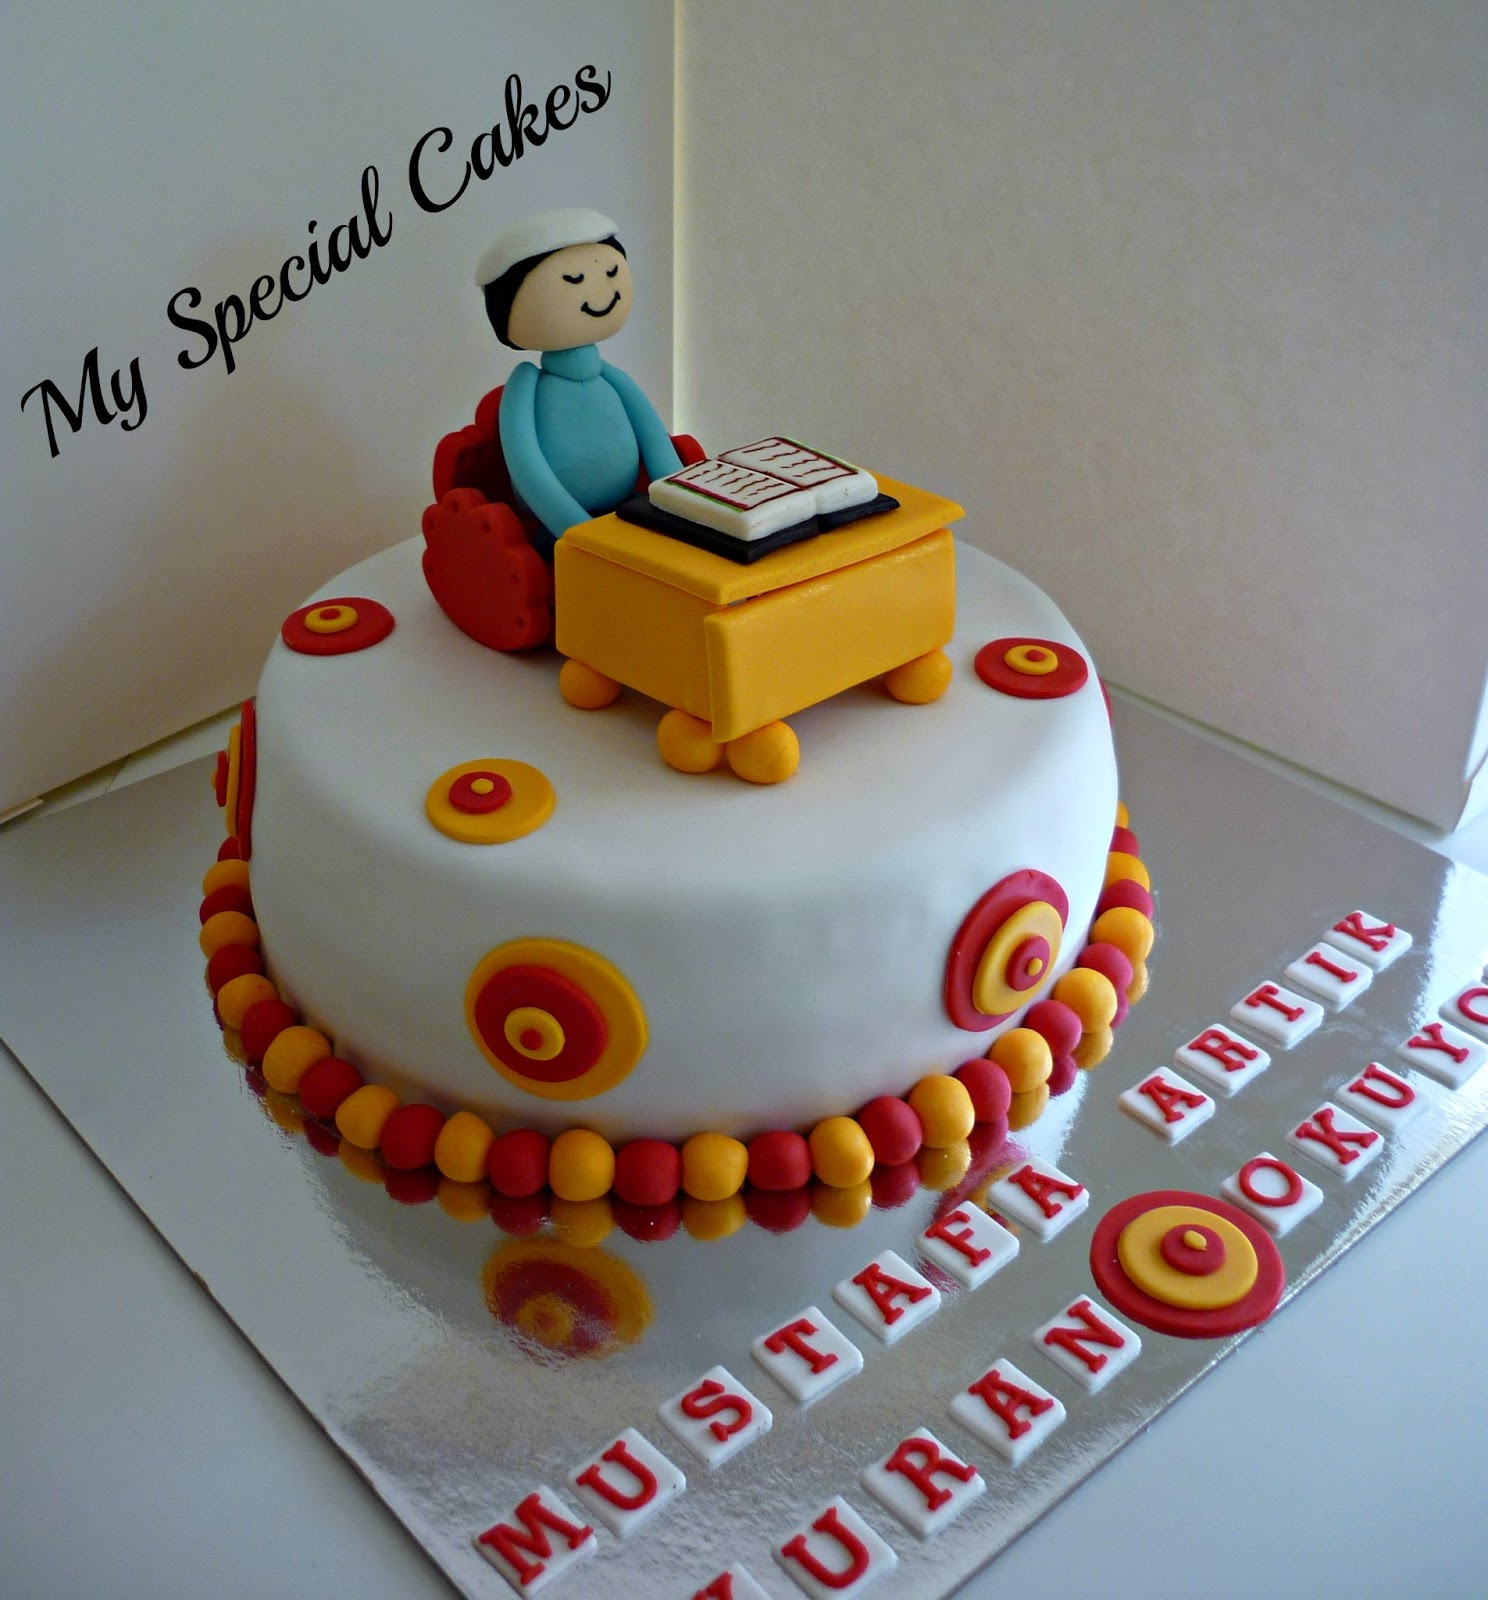 My Special Cakes March 2013